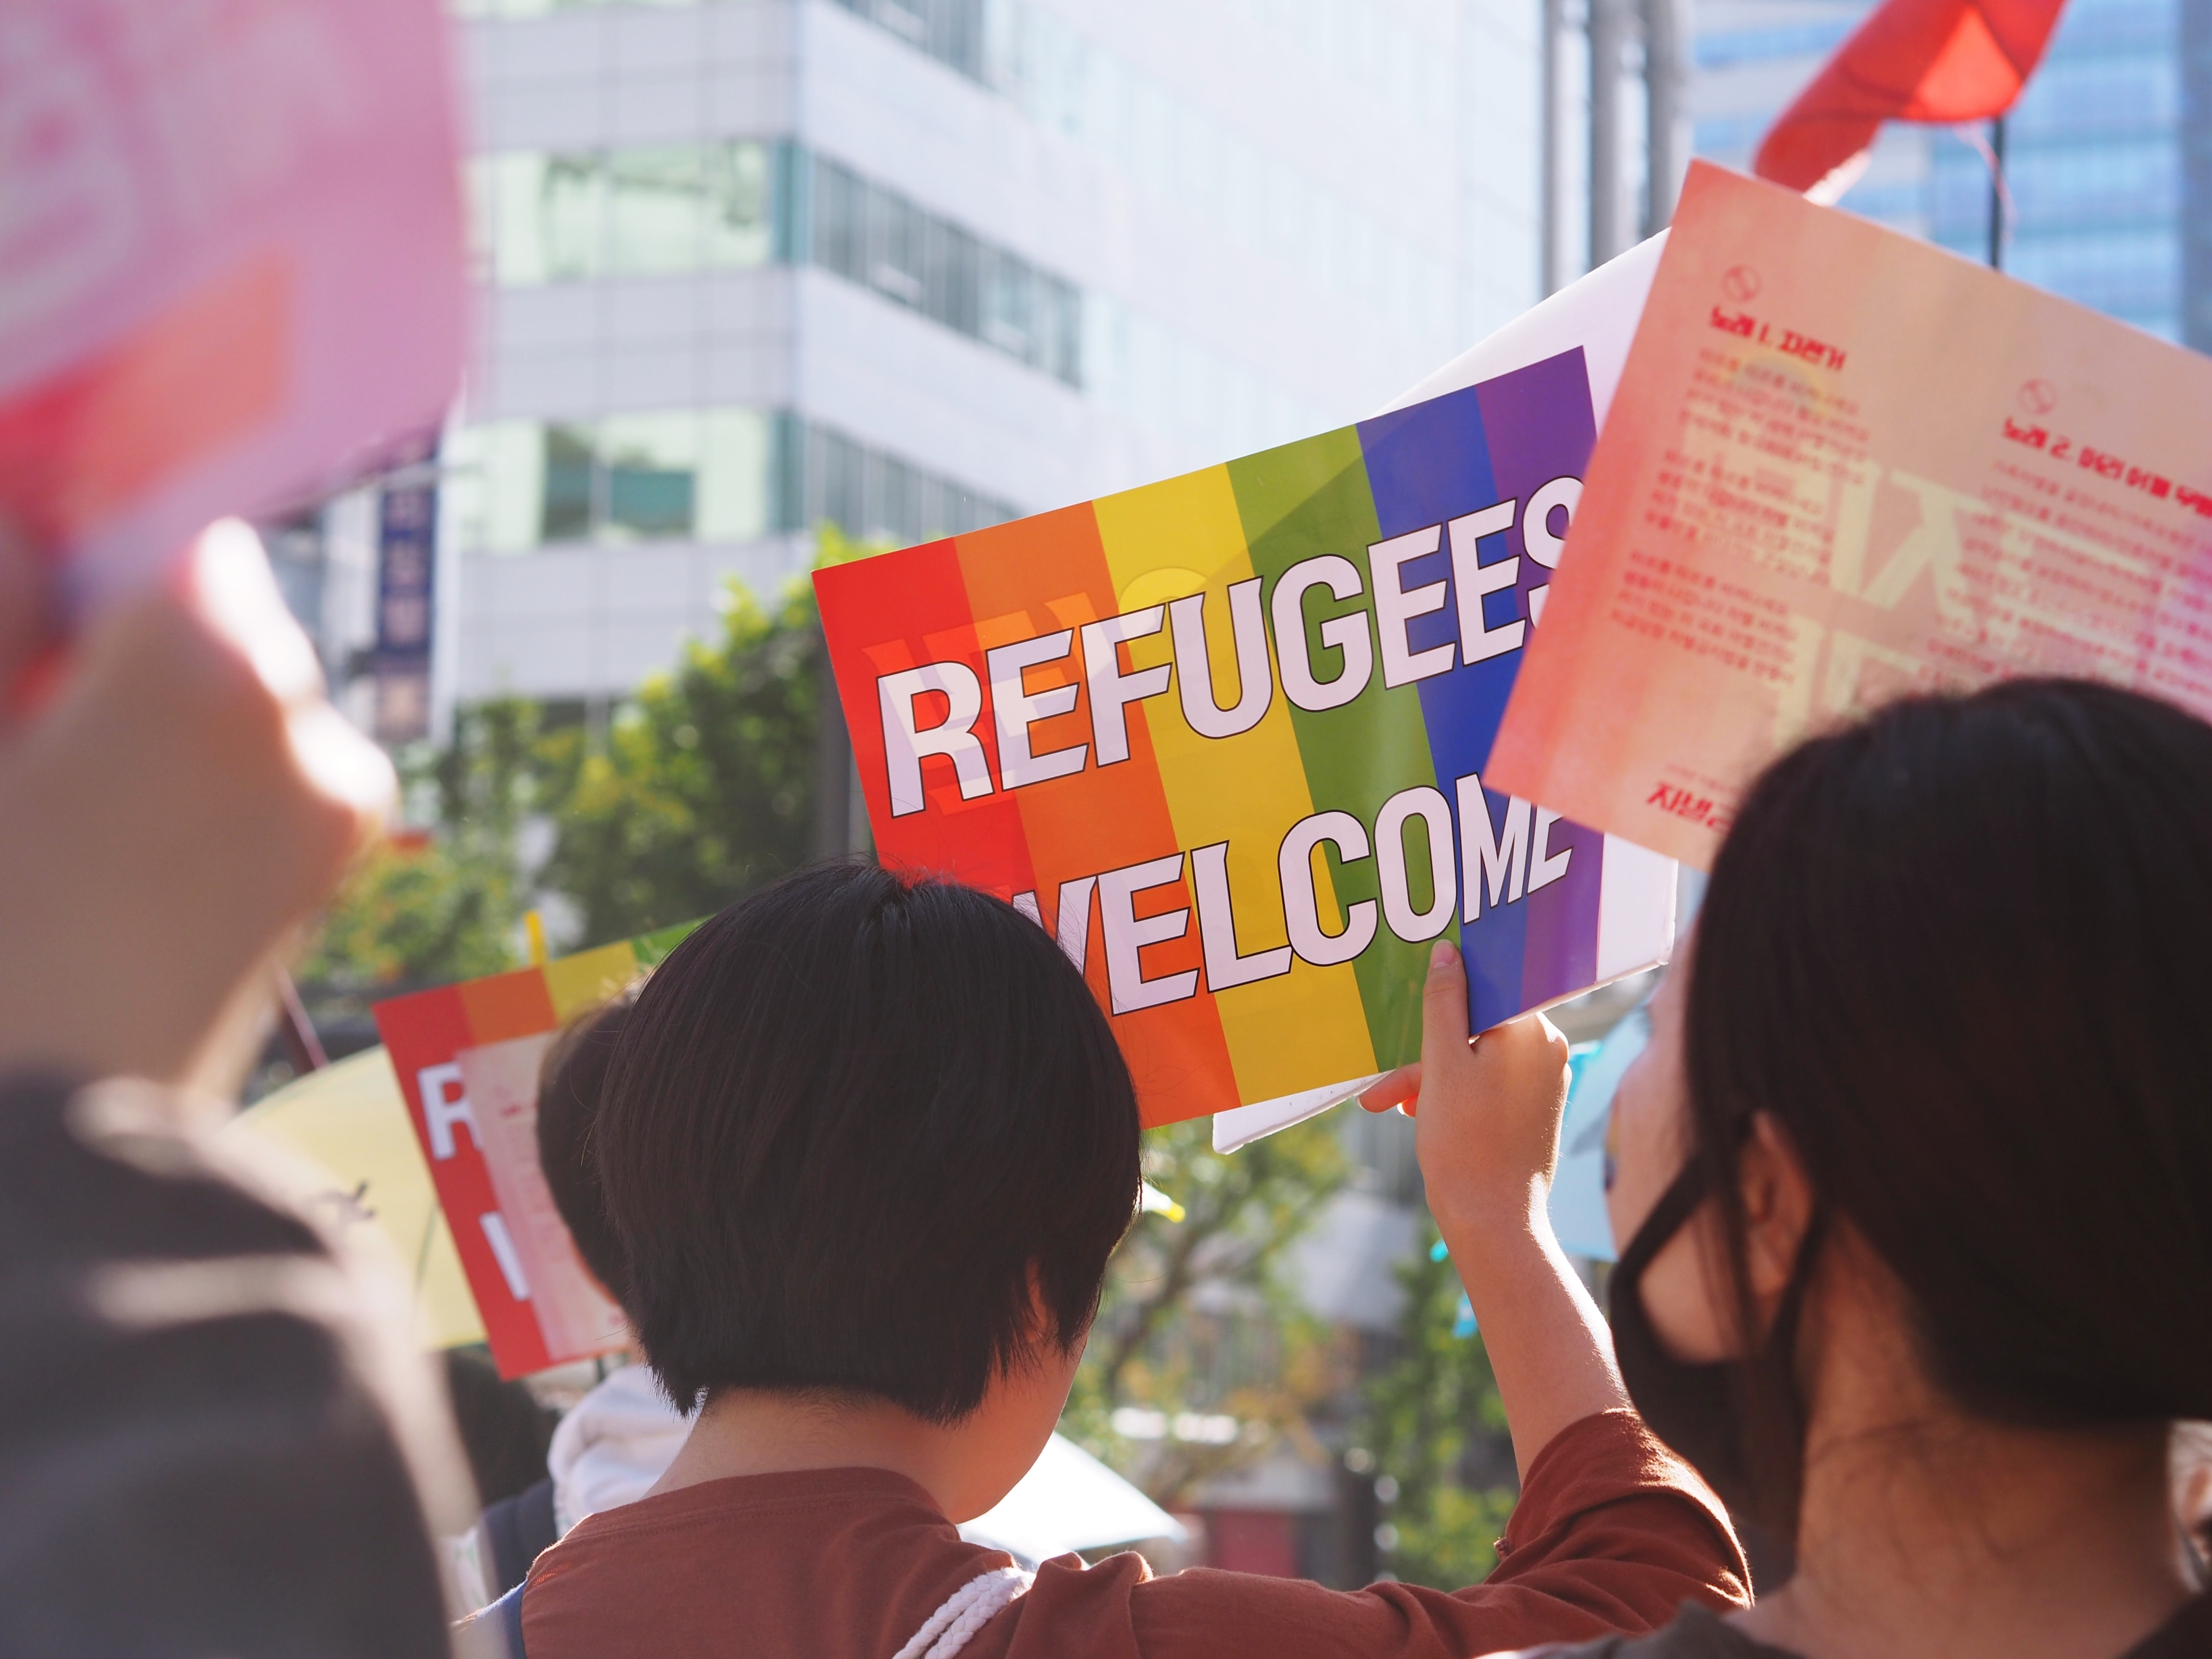 Protesters in support of refugees.